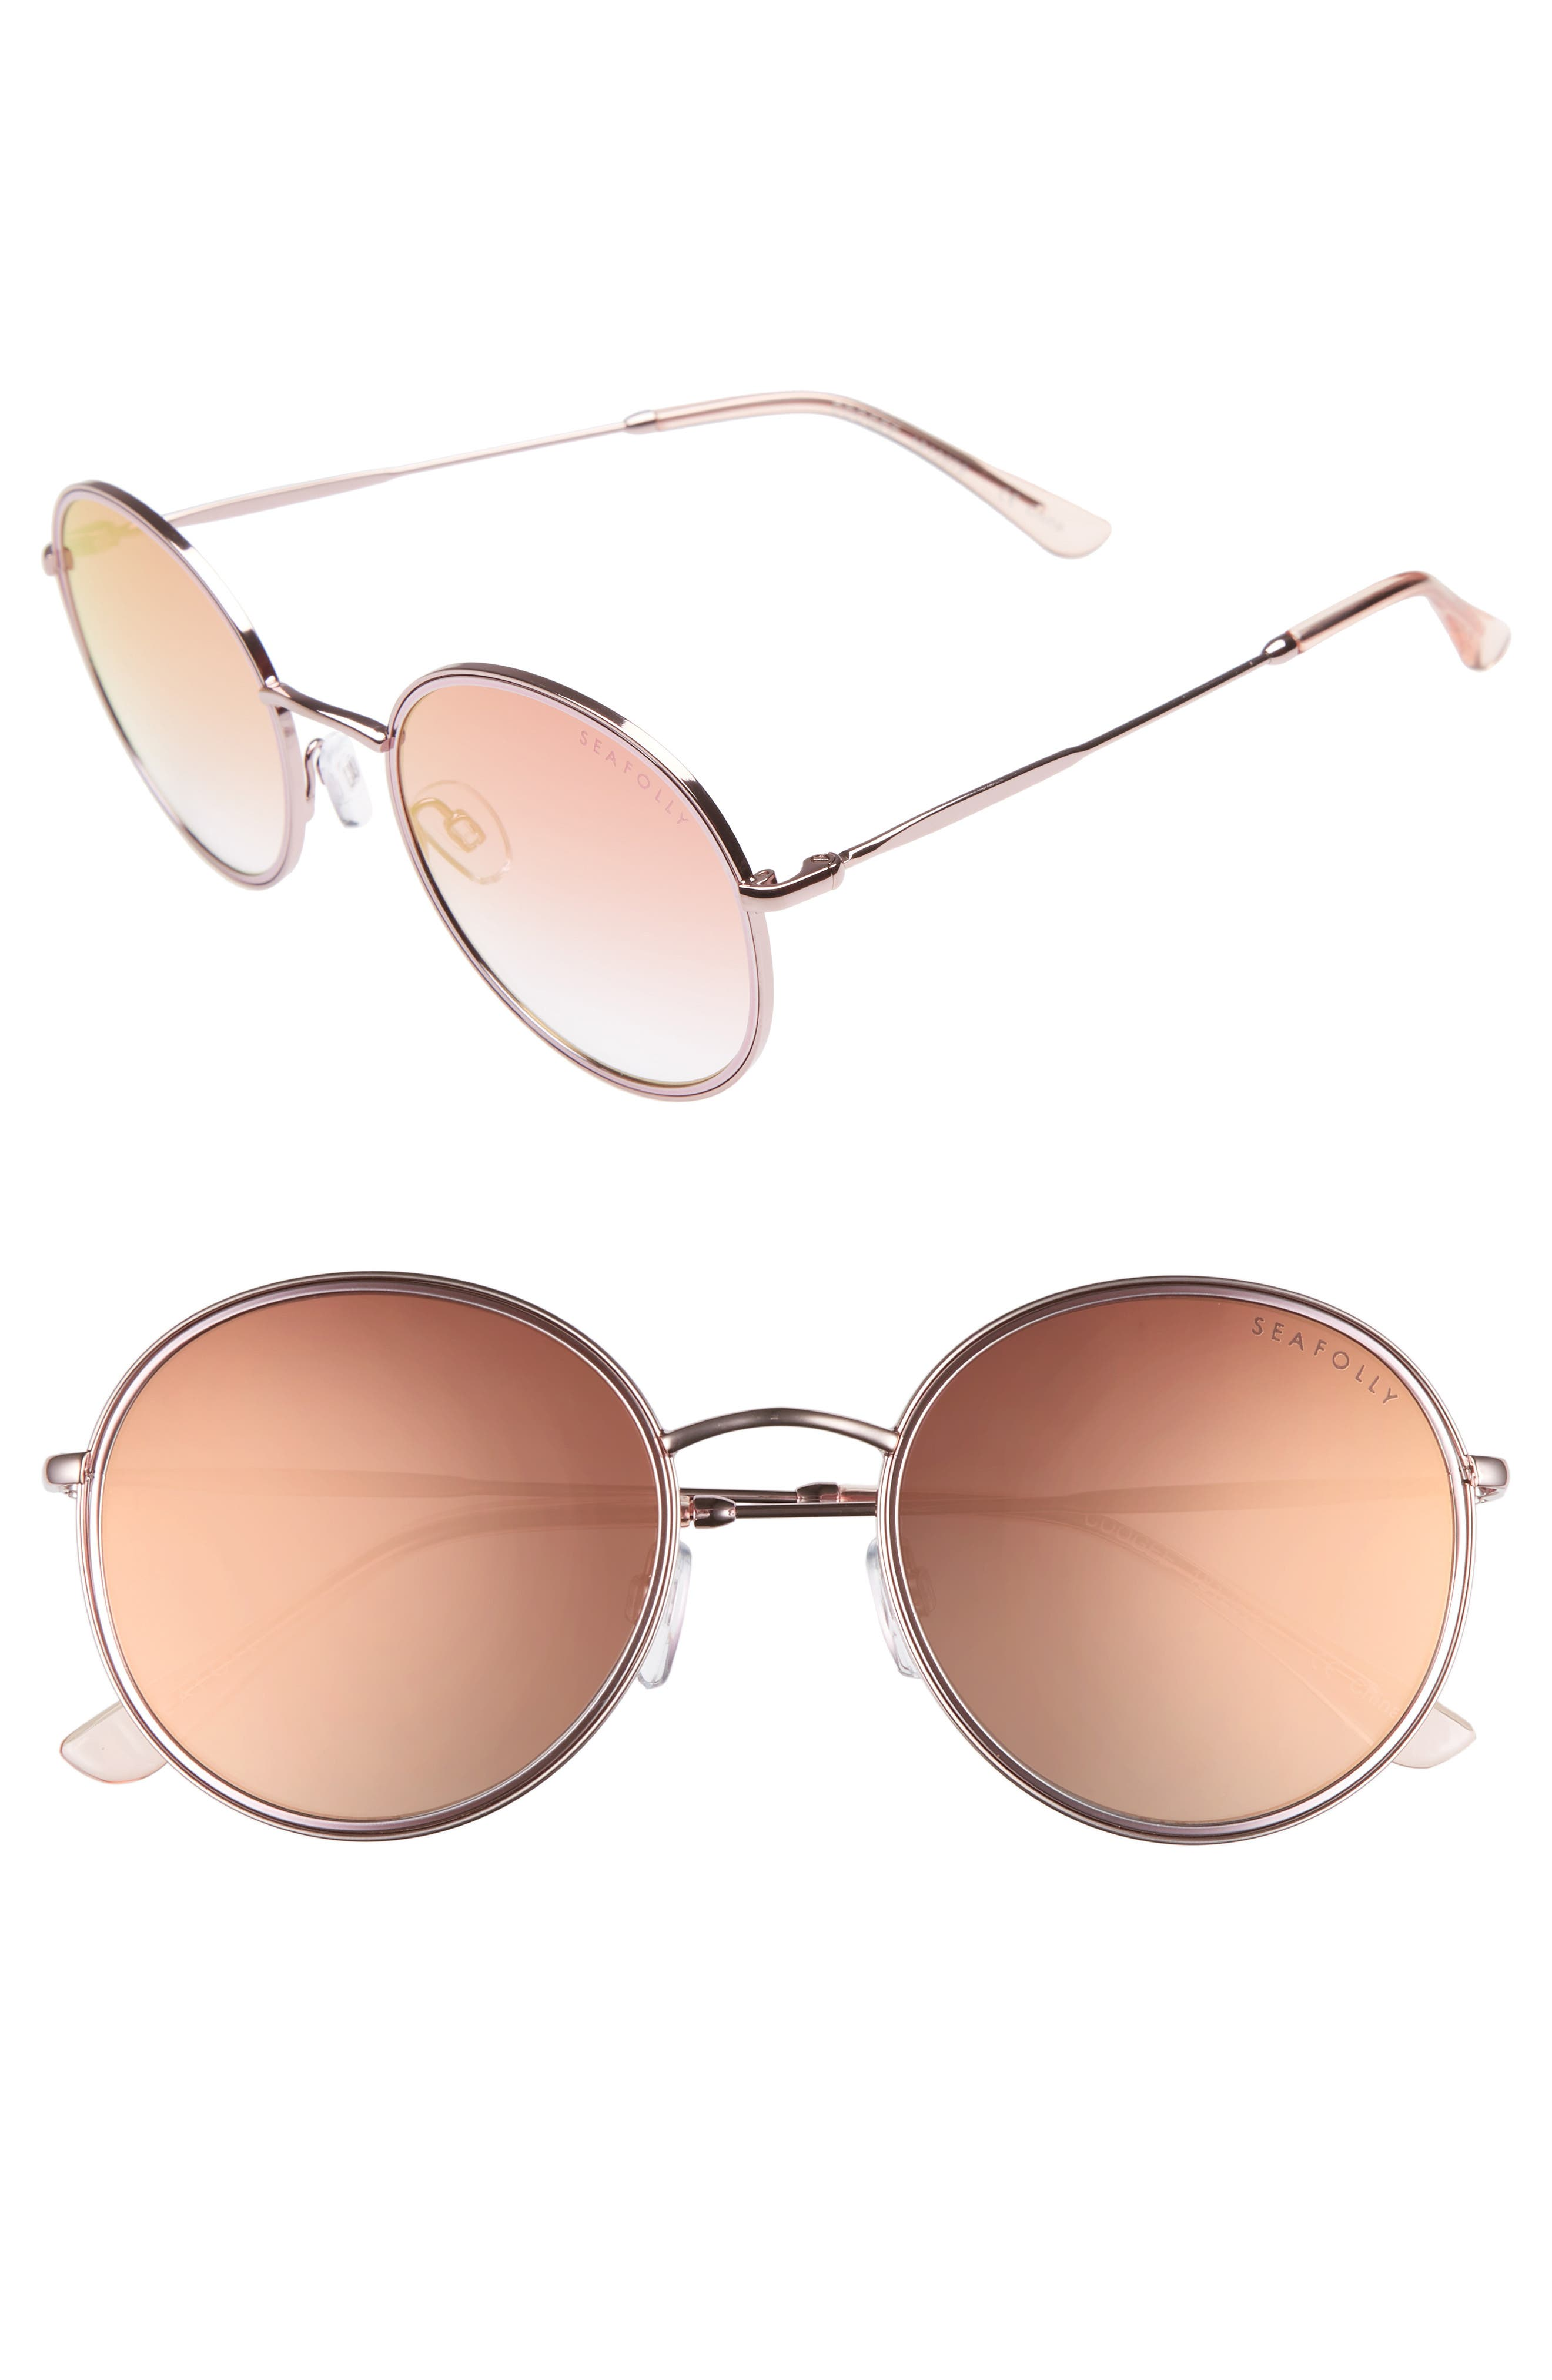 Coogee 54mm Round Sunglasses,                             Main thumbnail 1, color,                             Rose